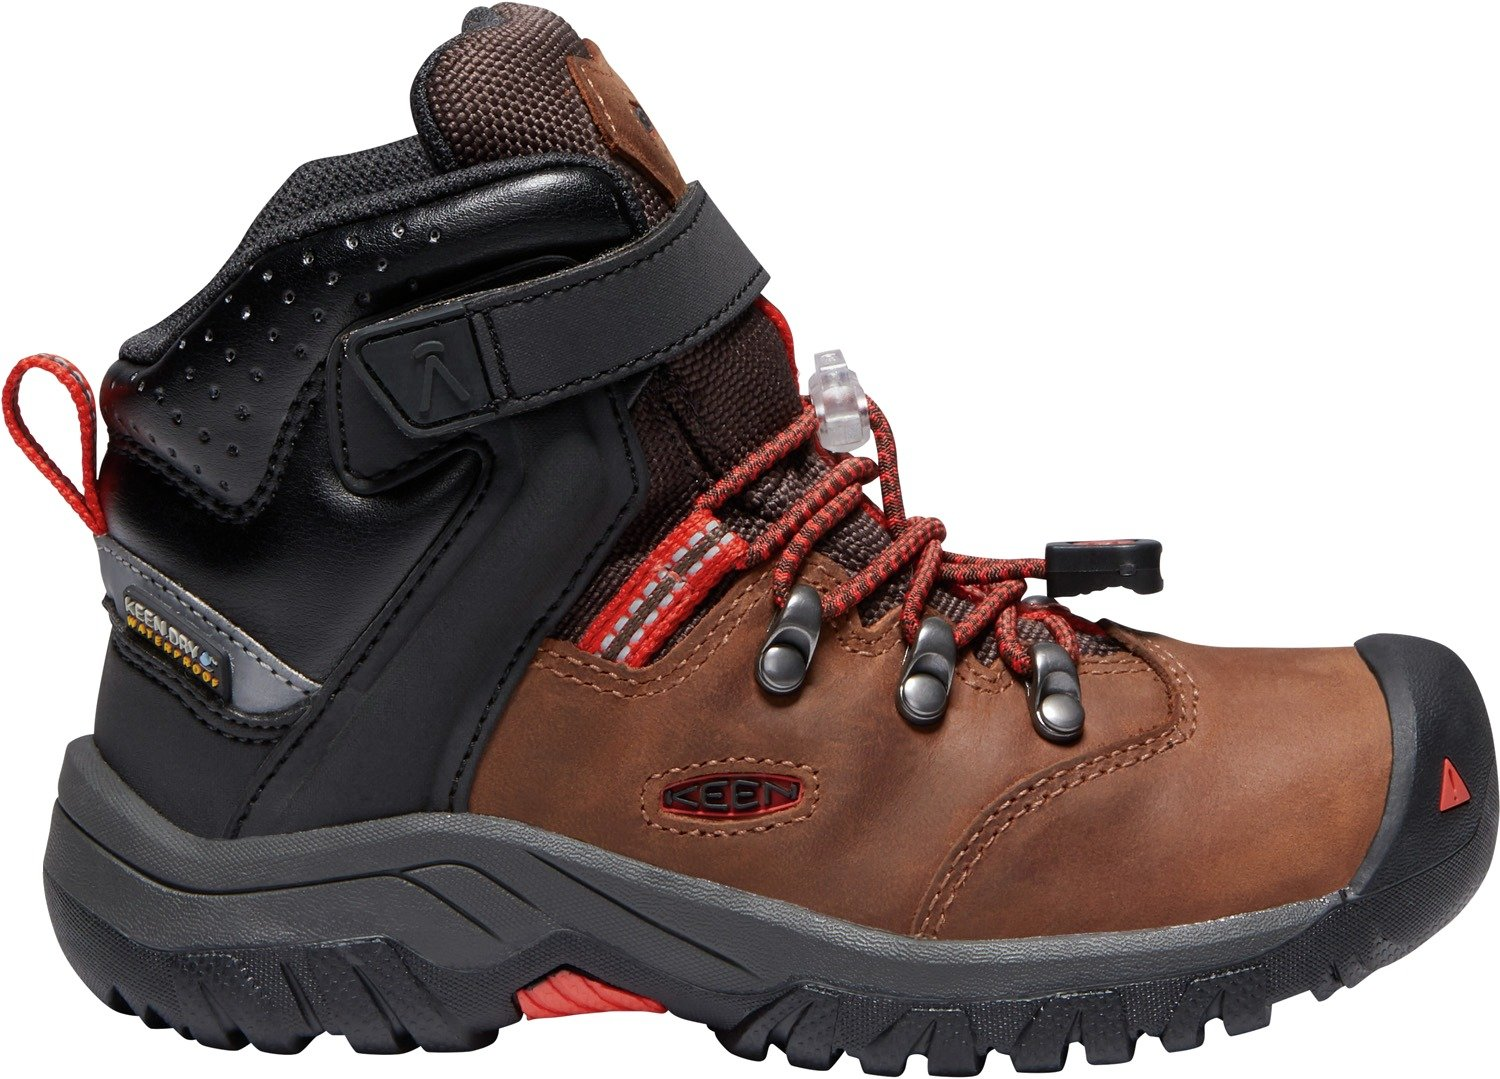 KEEN - Kid's Torino II Mid Waterproof Winter Boots, Tortoise Shell/Fiery Red, 9 M US Big Kid